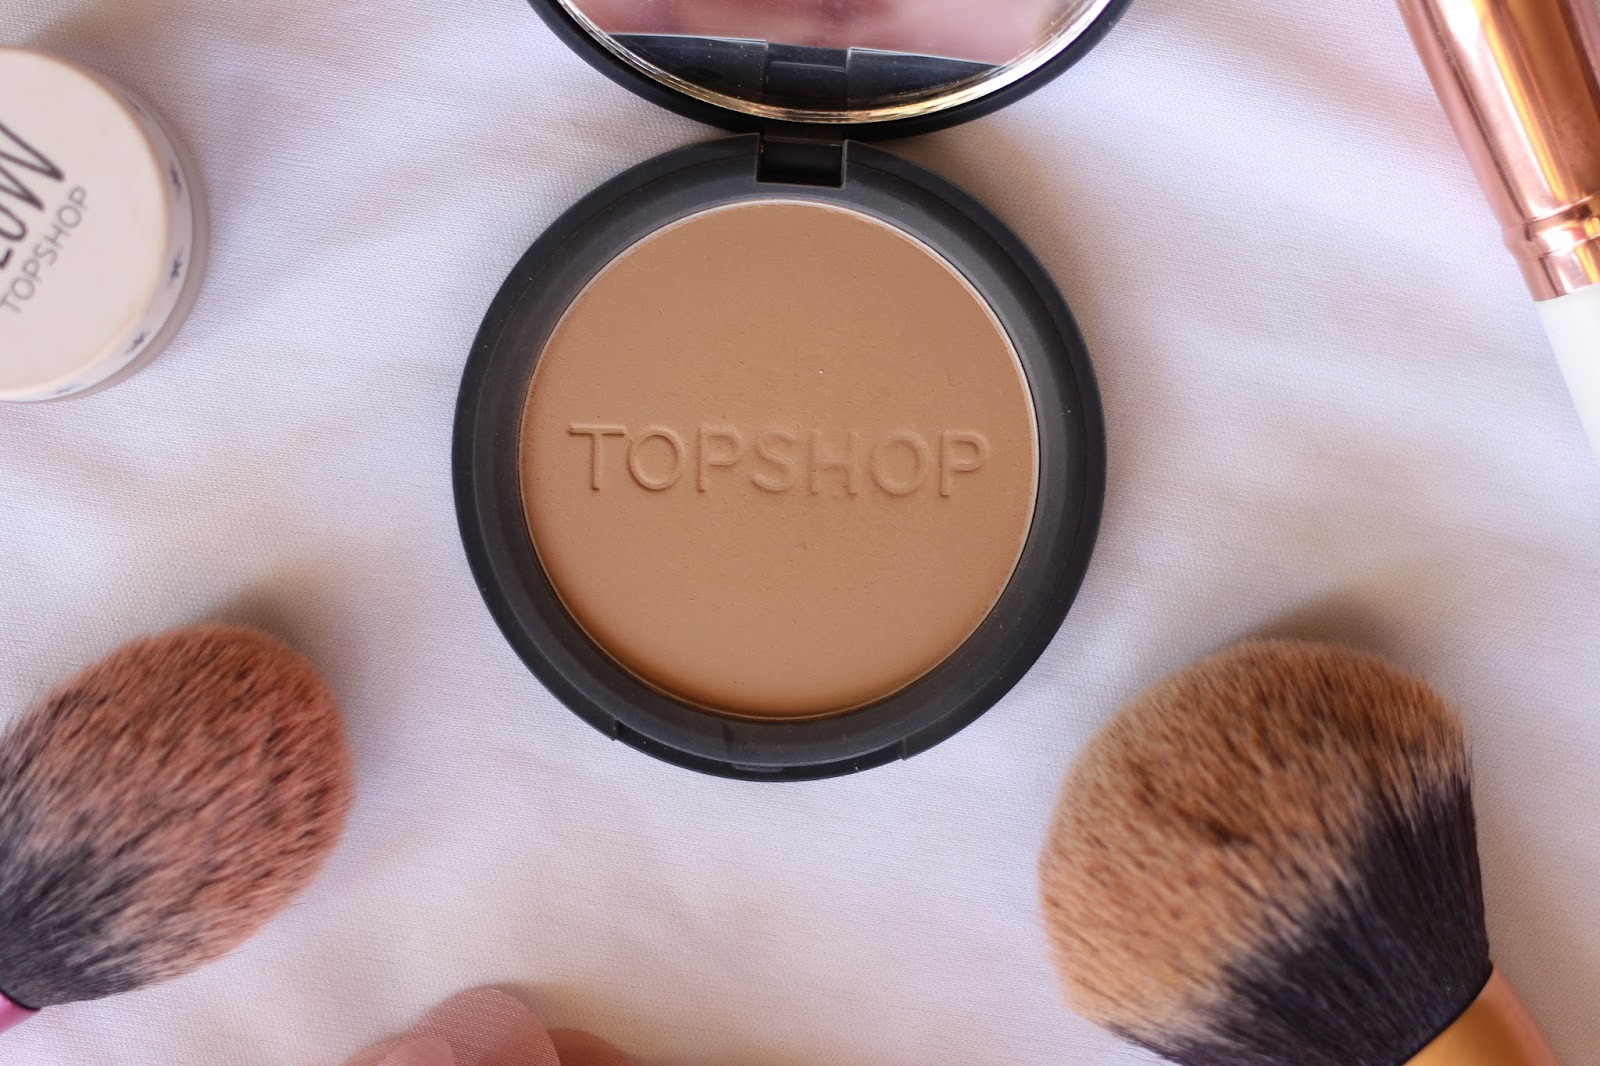 TOPSHOP BRONZER IN MOHAWKE